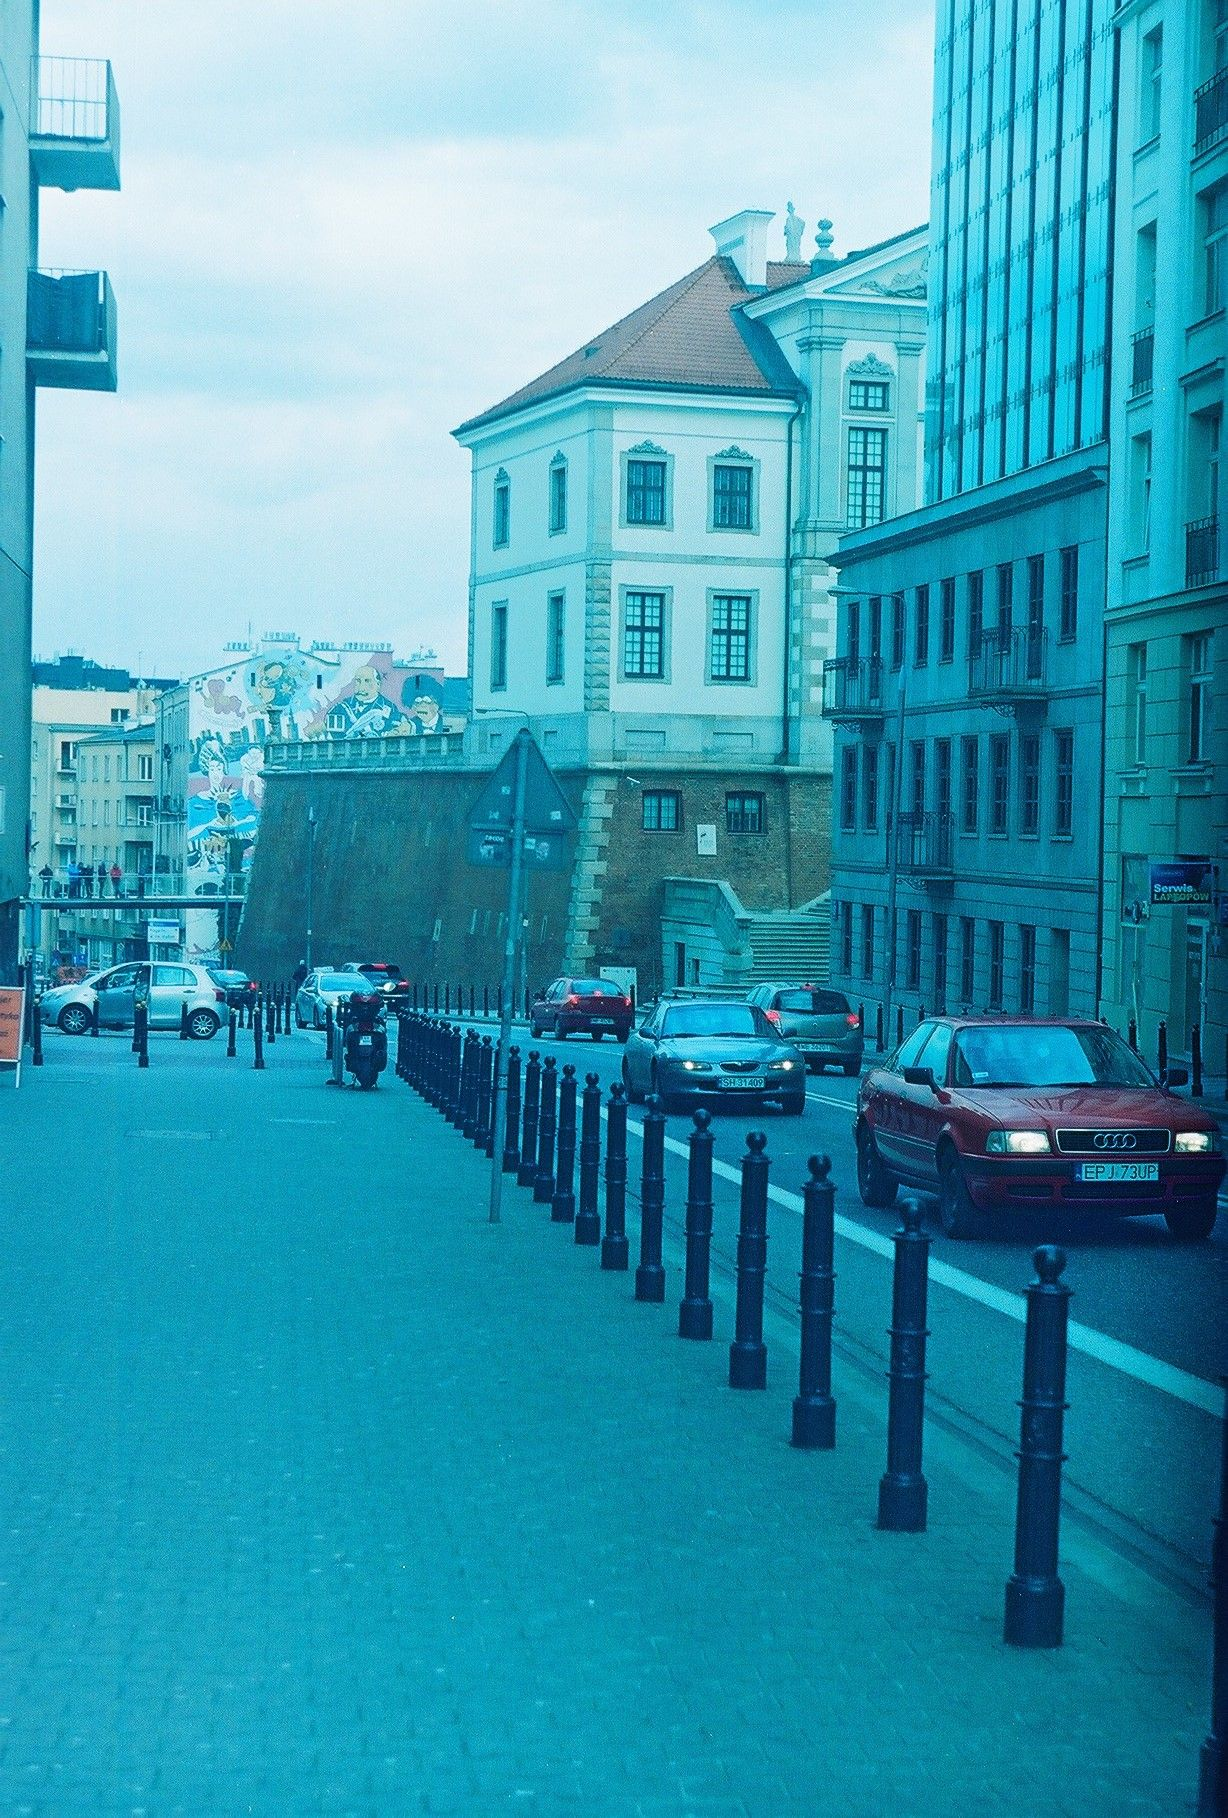 #warsaw #poland #oldcity #streets #downtown #architecture #inspiration #longwalks #zenit #35mm #плівка